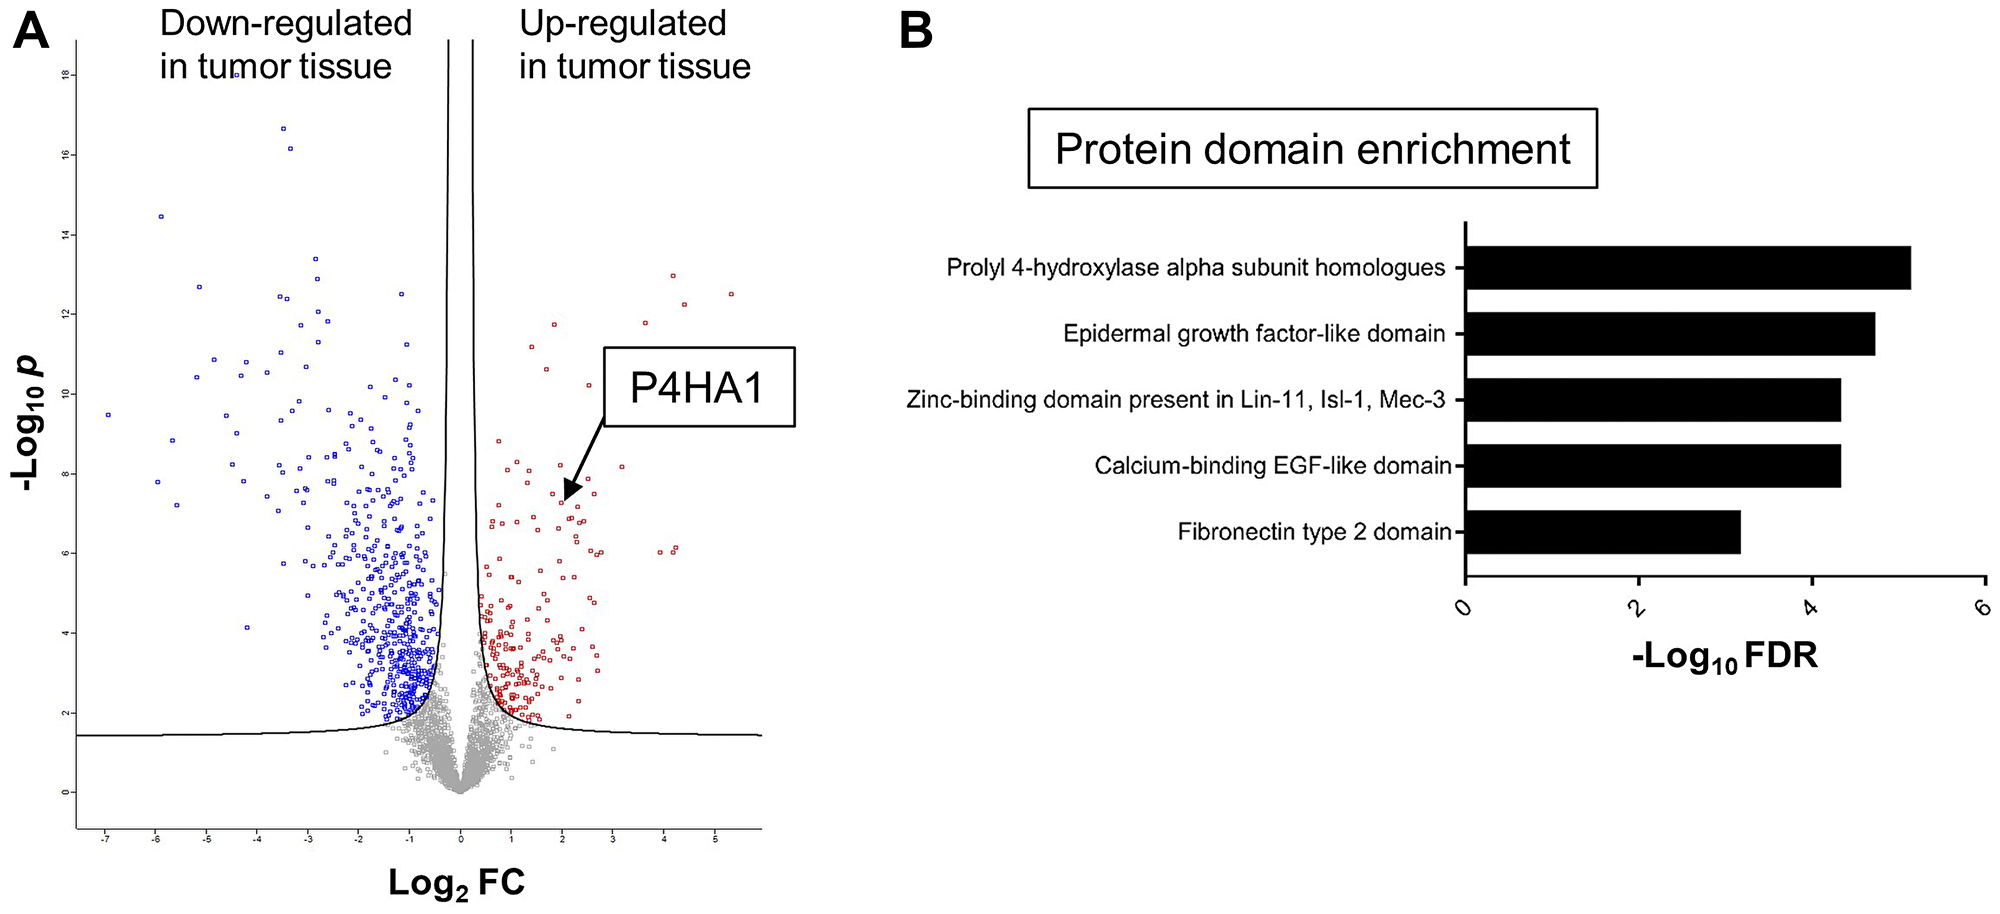 Mass spectrometric proteomics of CRC and global protein domain enrichment analysis.